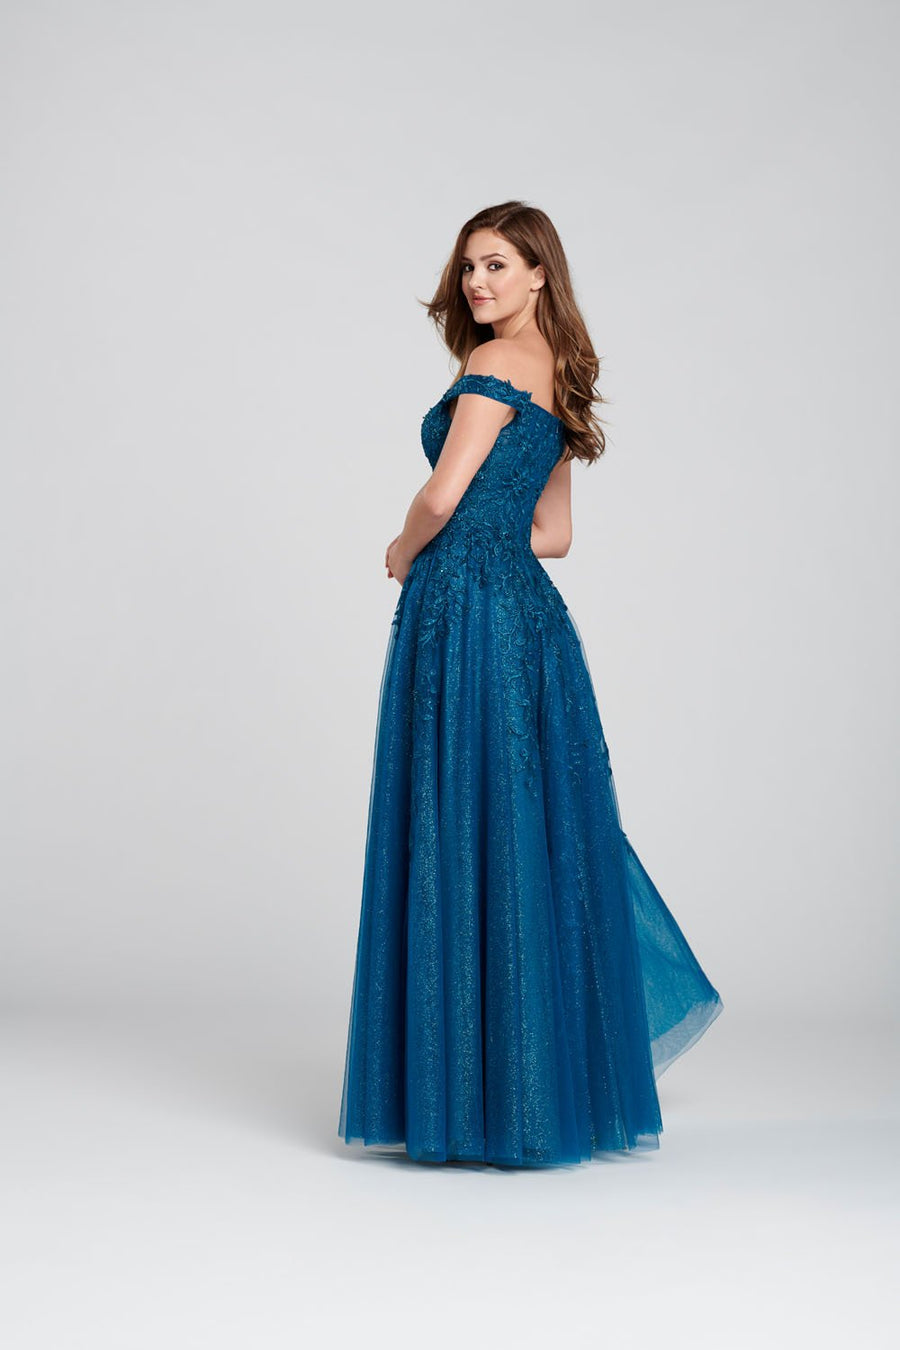 Ellie Wilde EW120114 prom dress images.  Ellie Wilde EW120114 is available in these colors: Dark Teal, Navy Blue, English Rose, Wine.